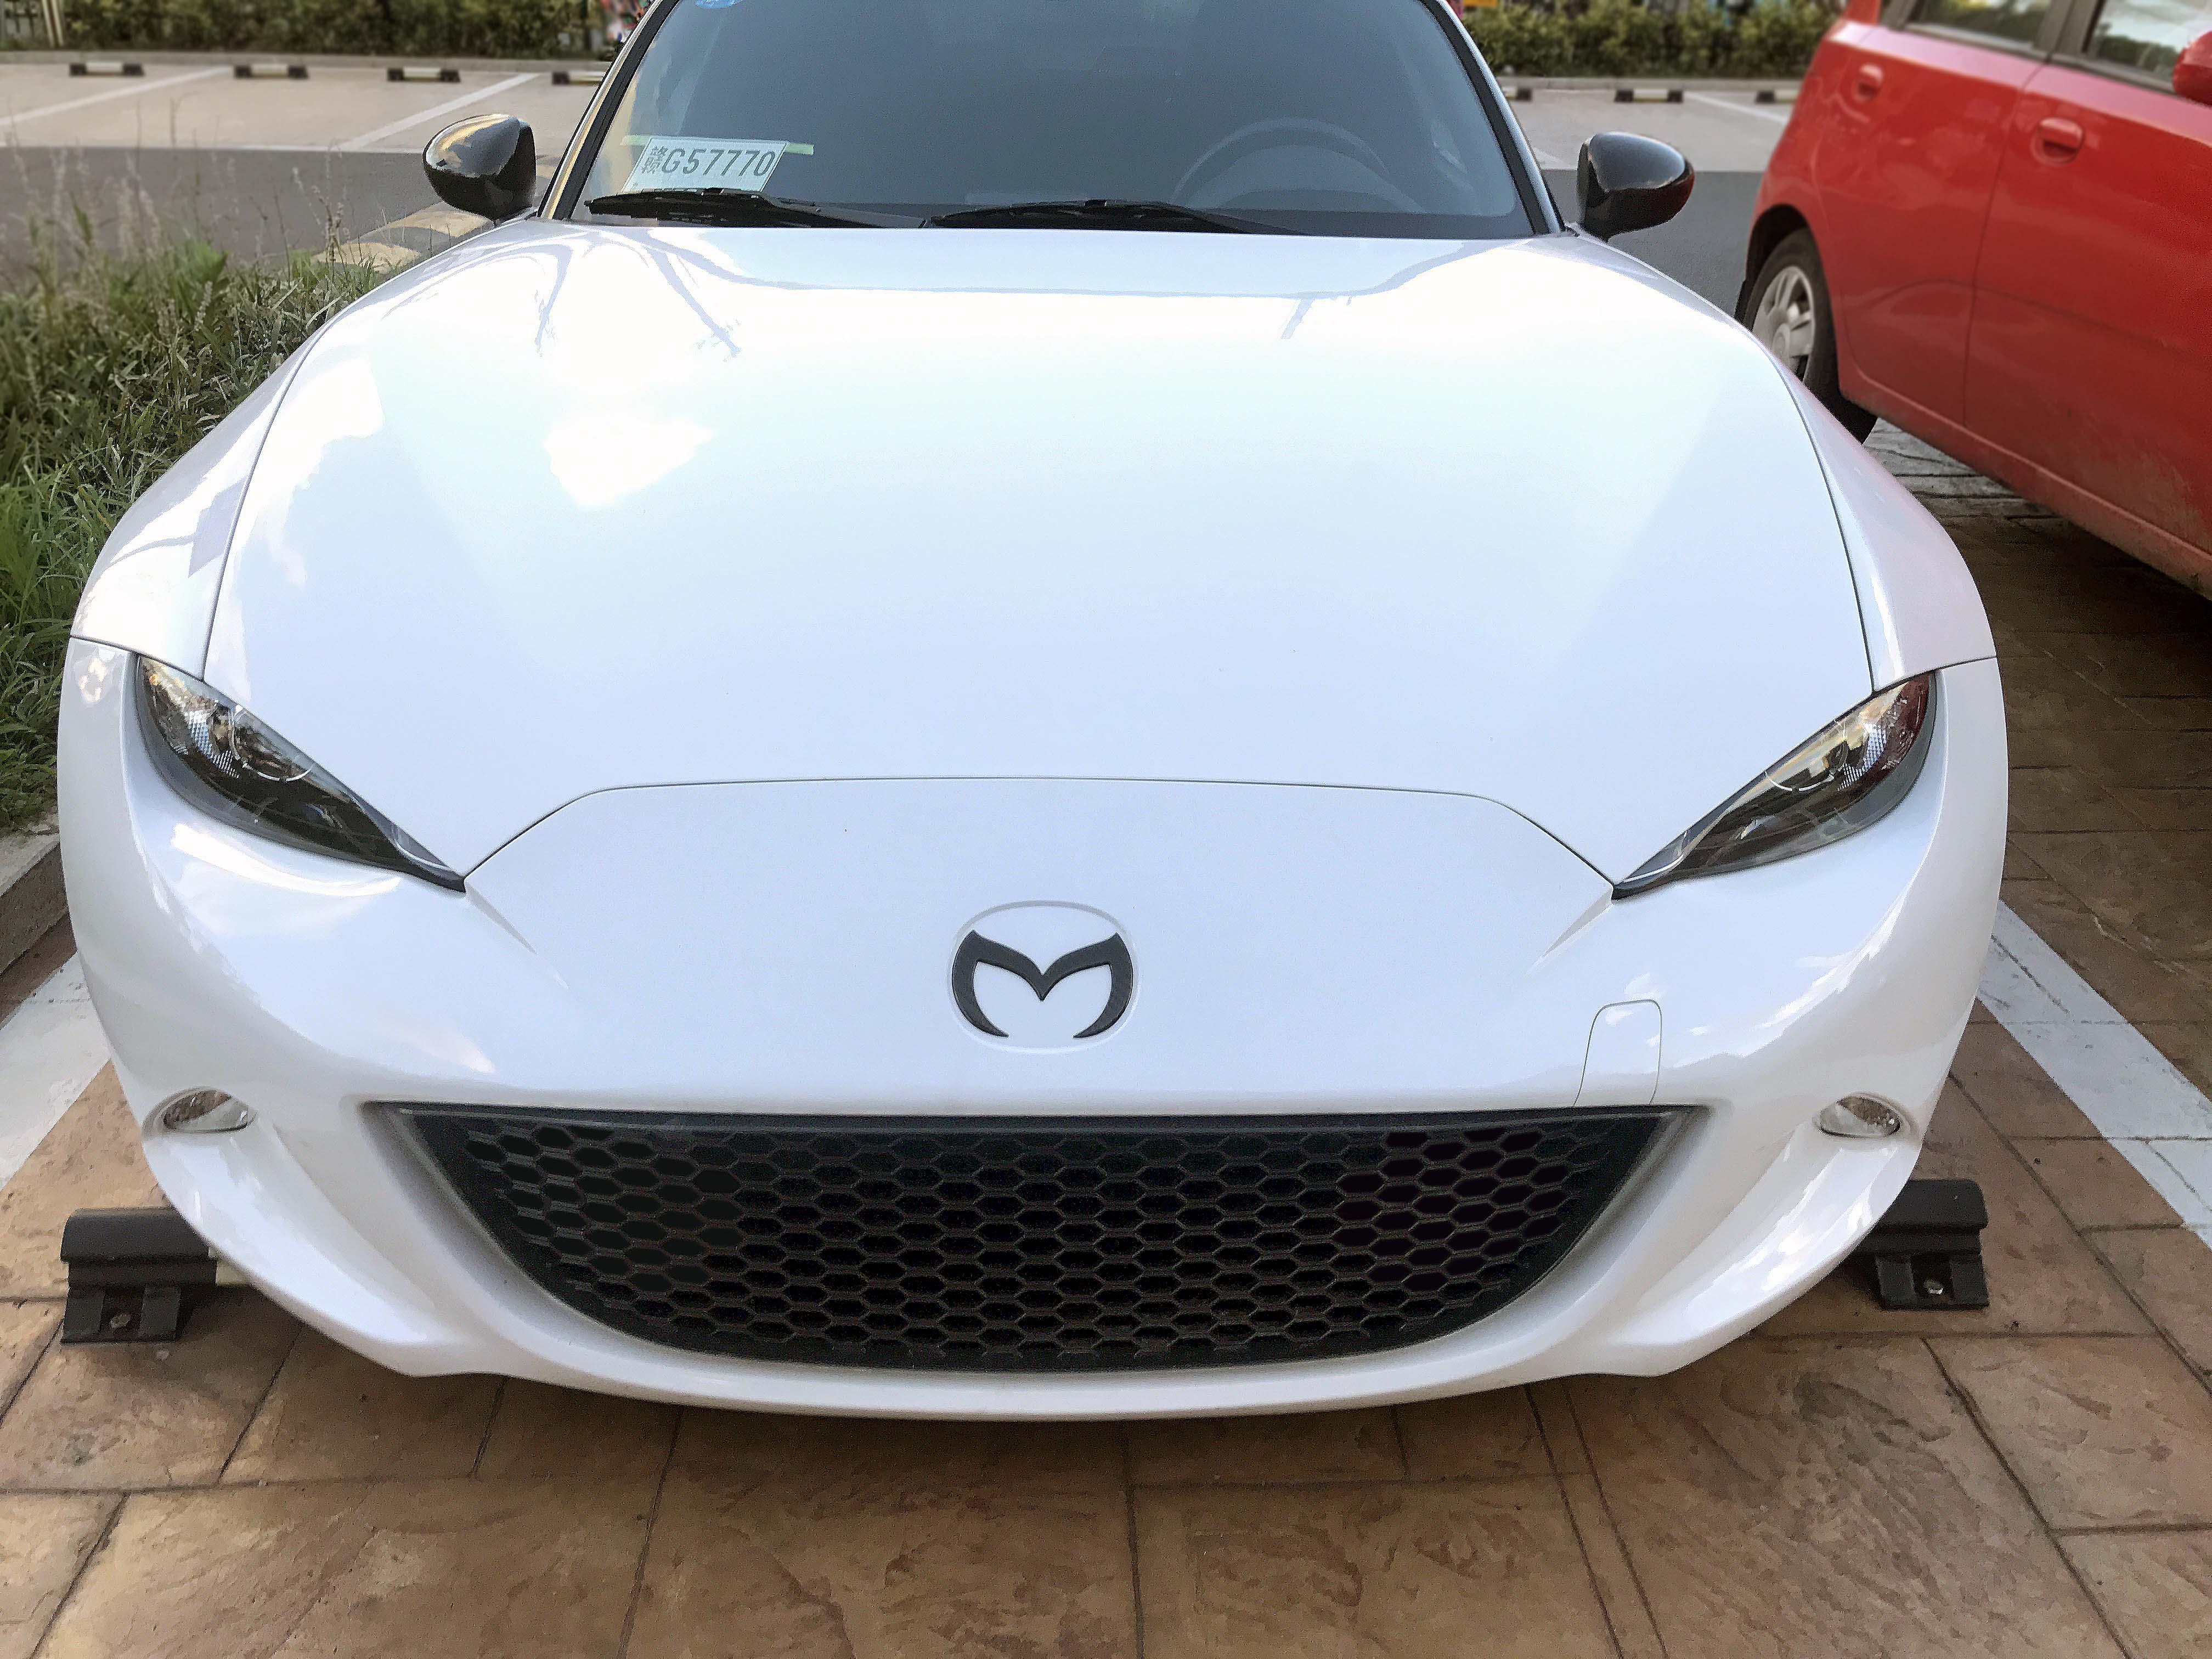 Spyder Grille The Ultimate Resource for Mazda Miata Parts